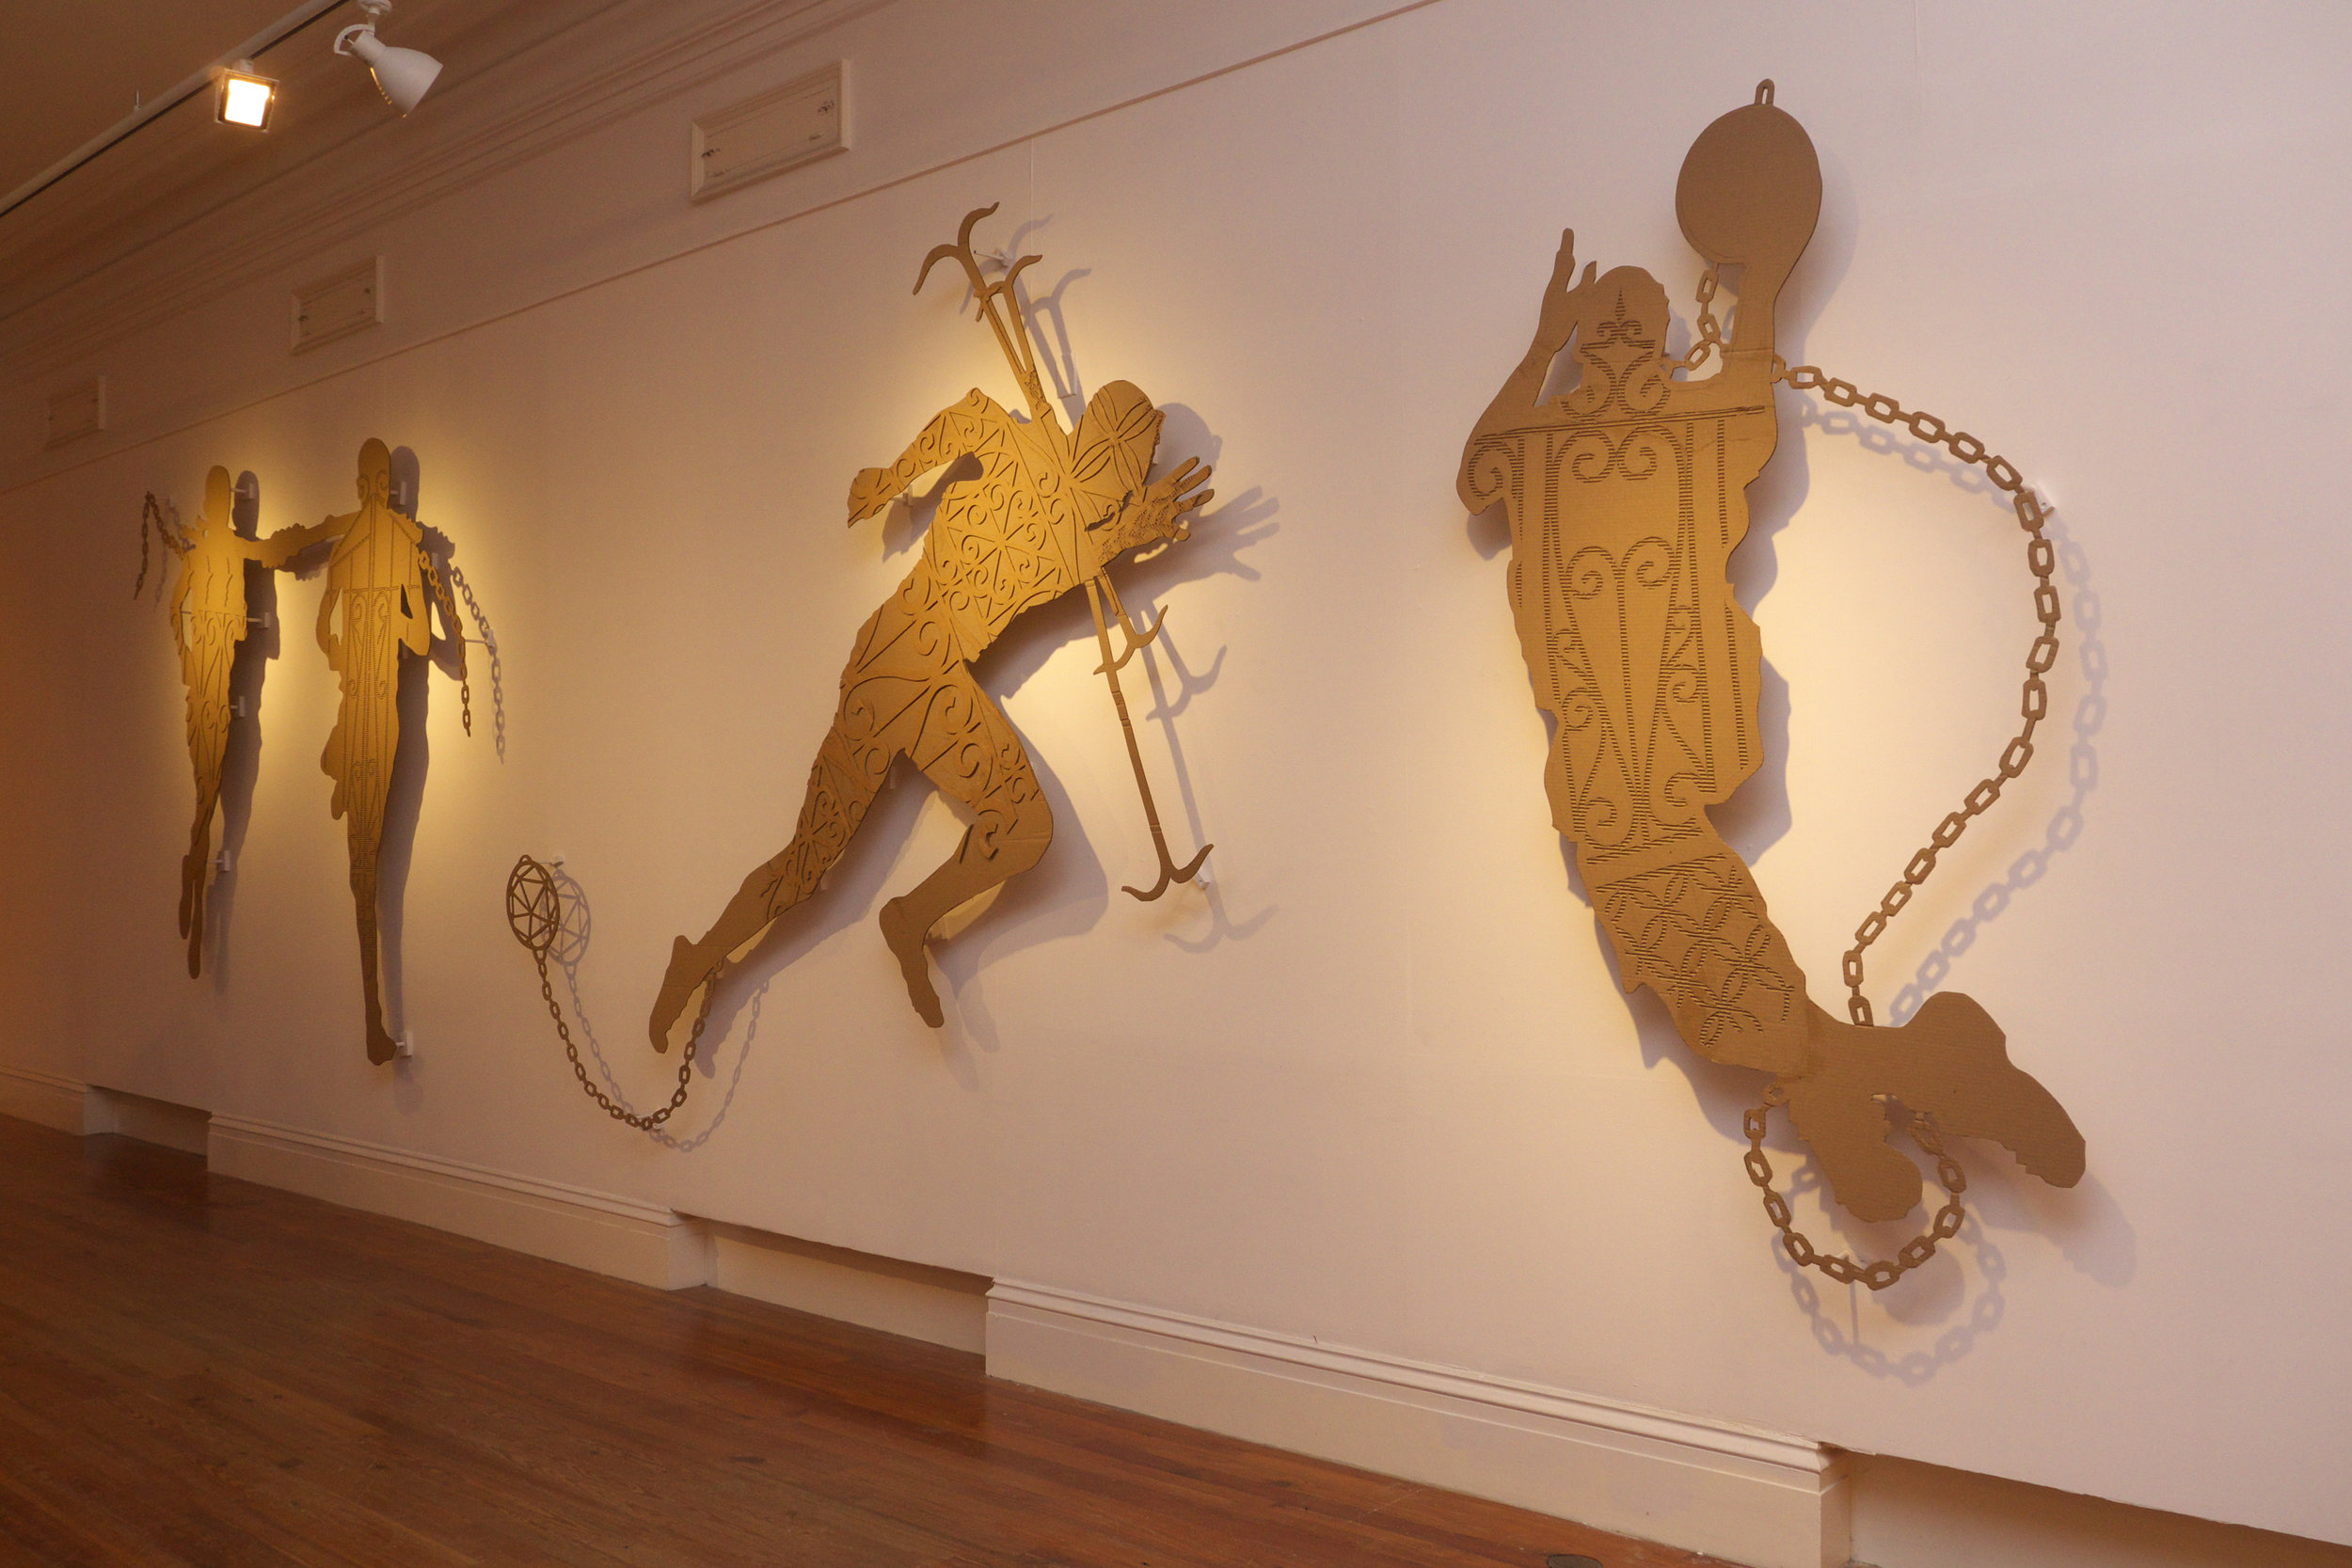 """John Beadle's """"Higher Goals"""" (2014) shown as part of the 7th National Exhibition. His work for """"We Suffer To Remain"""" further investigates and expands these cardboard figures of Bahamian and Caribbean society."""